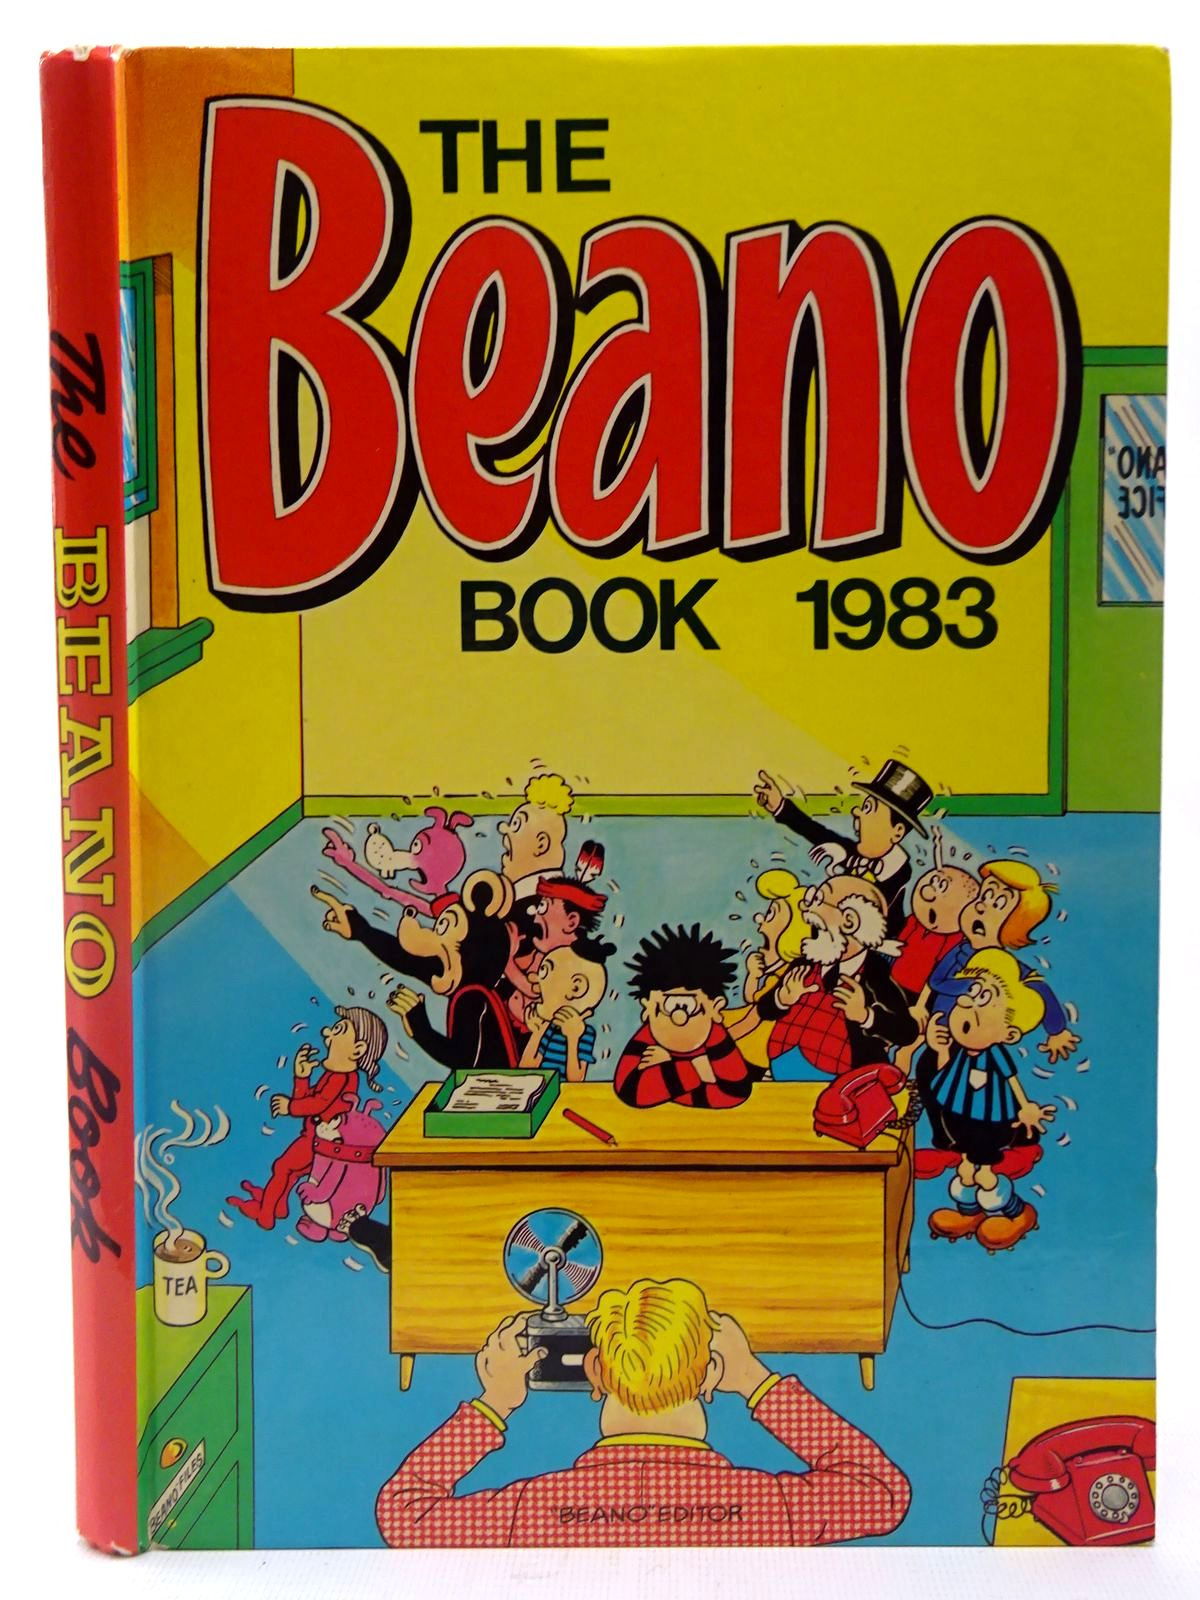 Photo of THE BEANO BOOK 1983 published by D.C. Thomson & Co Ltd. (STOCK CODE: 2127311)  for sale by Stella & Rose's Books